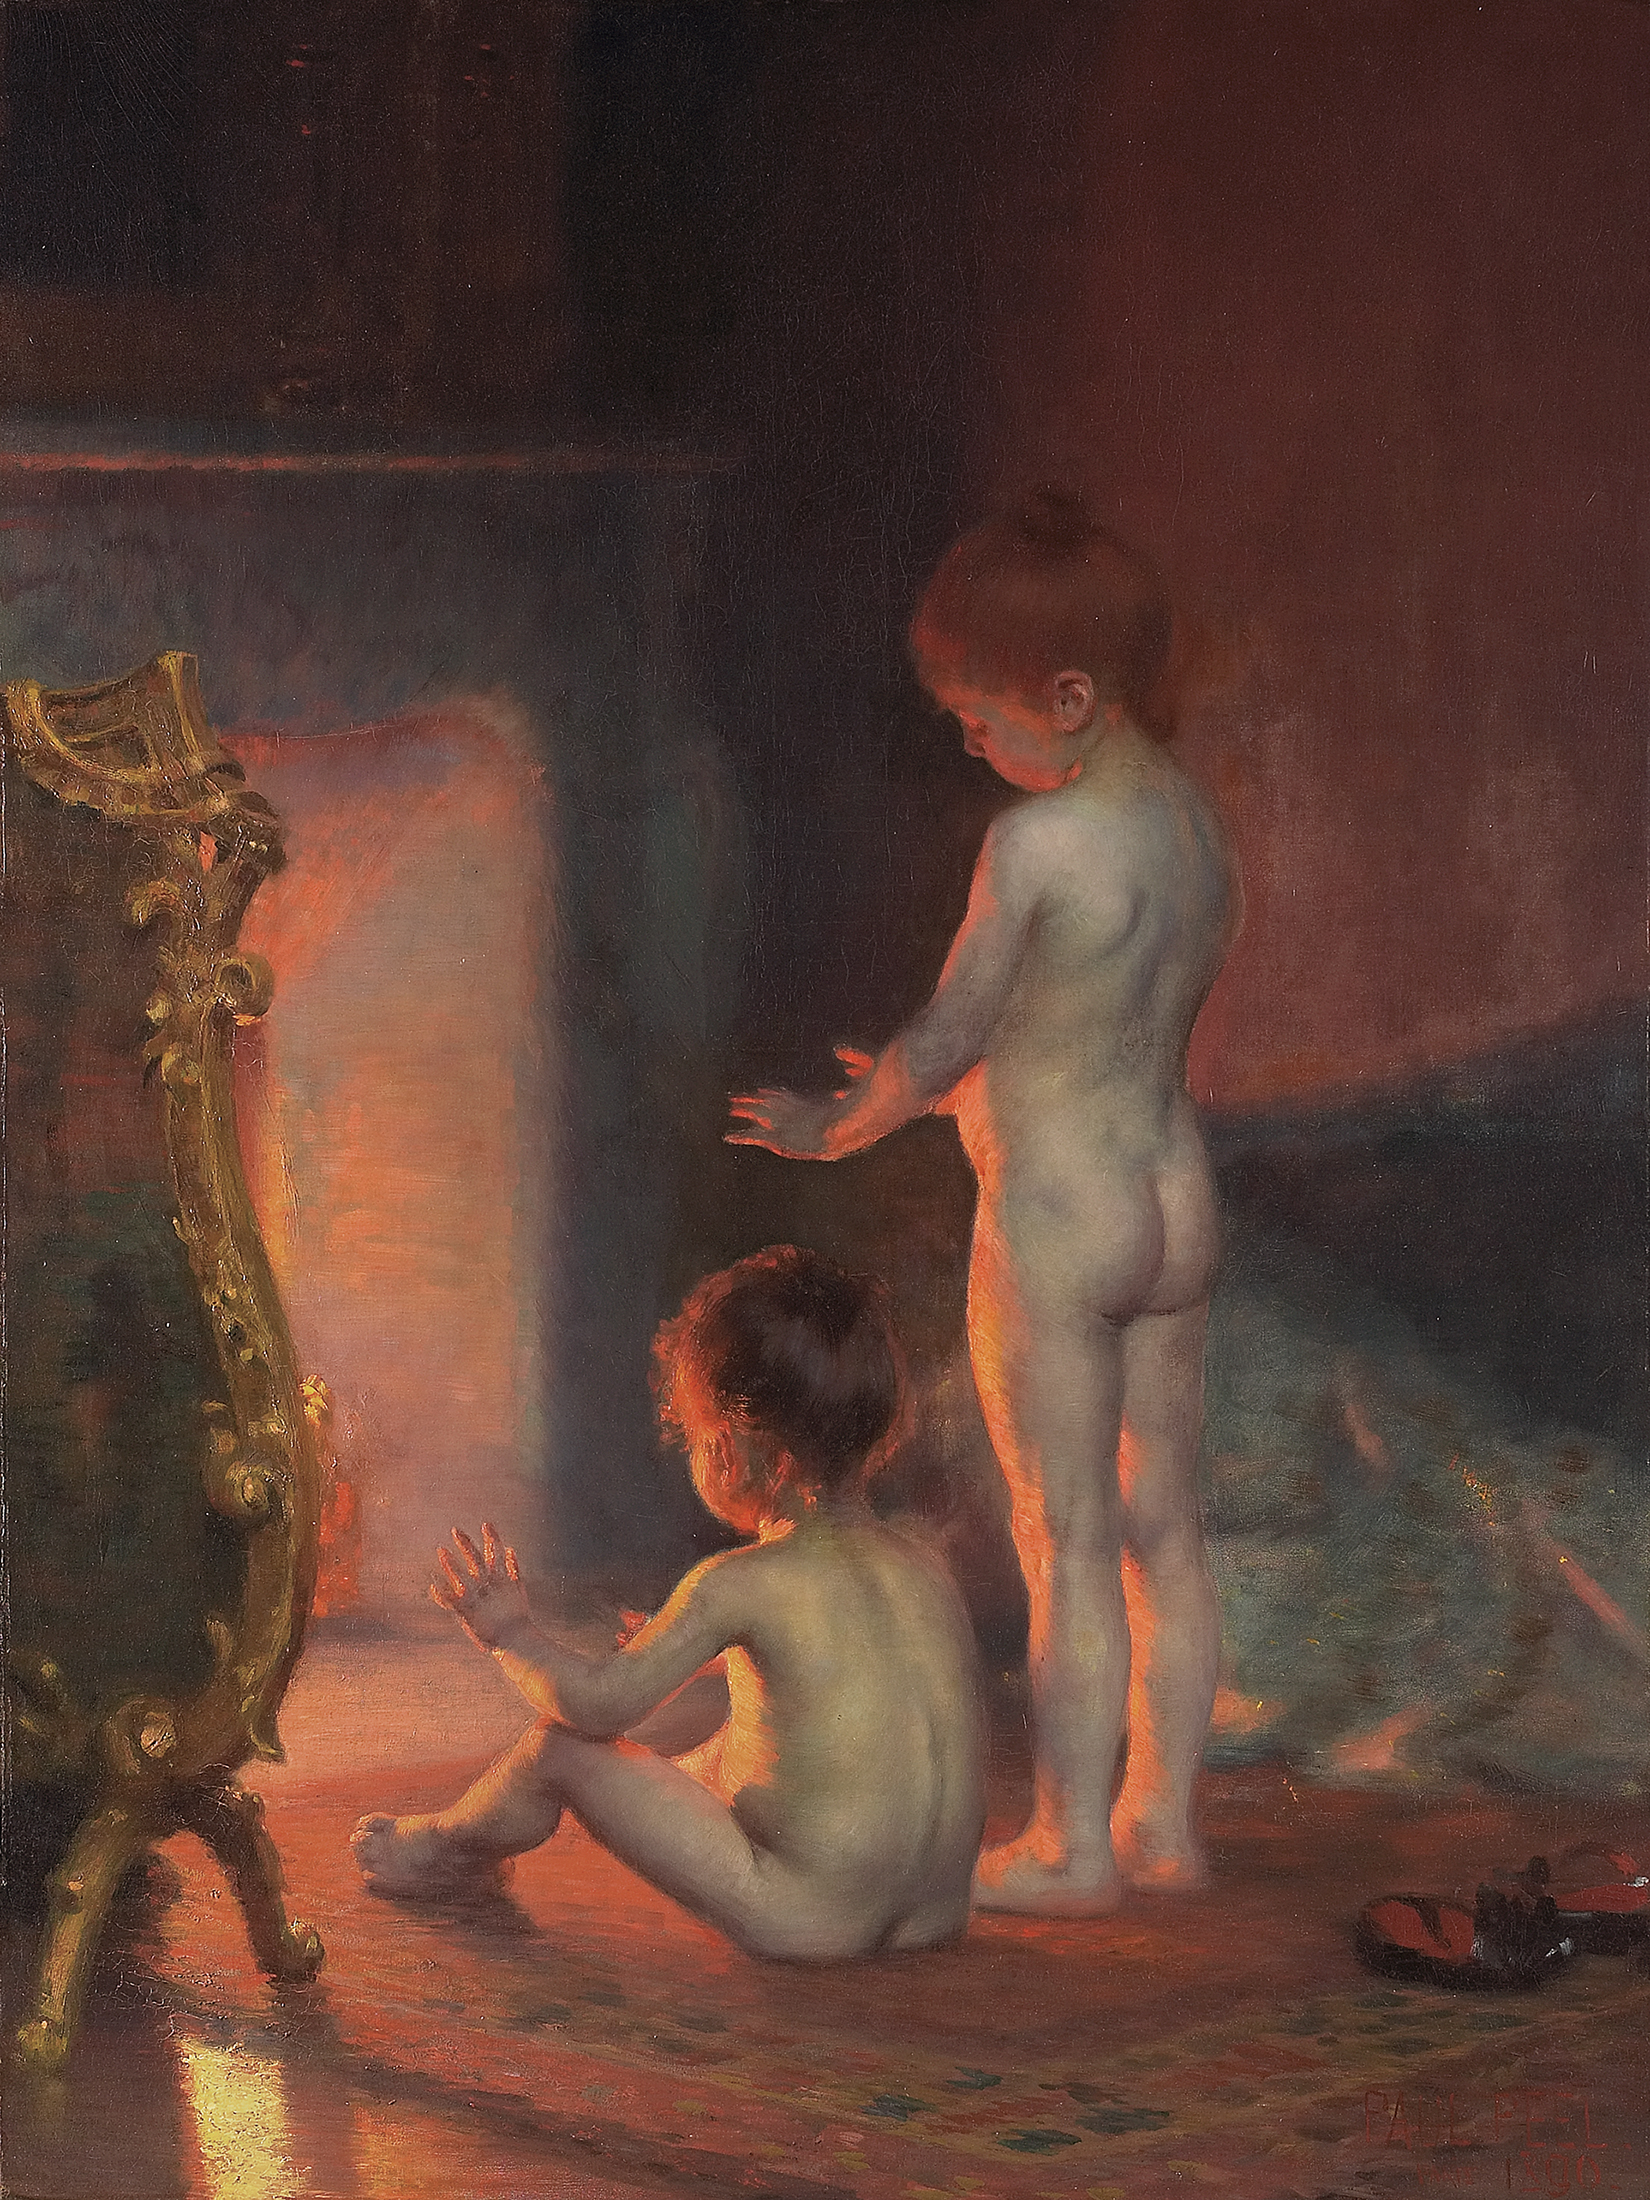 Two nude young children are warming themselves in front of a fireplace, arms stretched toward the heat. They are on an Oriental hearth rug, one sitting and the other standing. Warm tones radiate from the fire, colouring the children's skin.